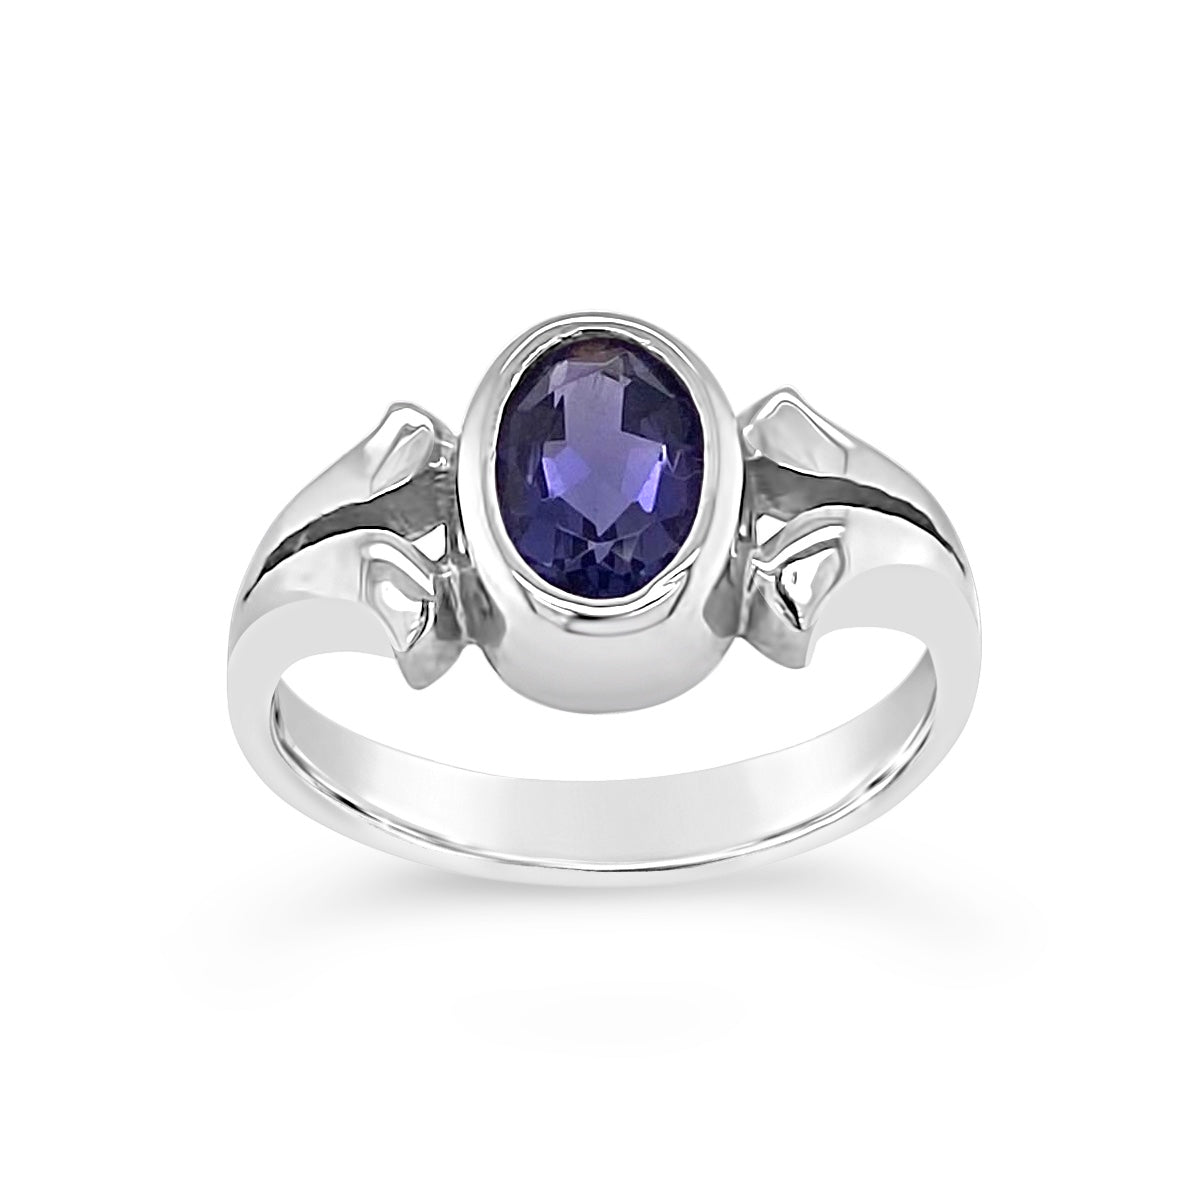 Oval Iolite Ring